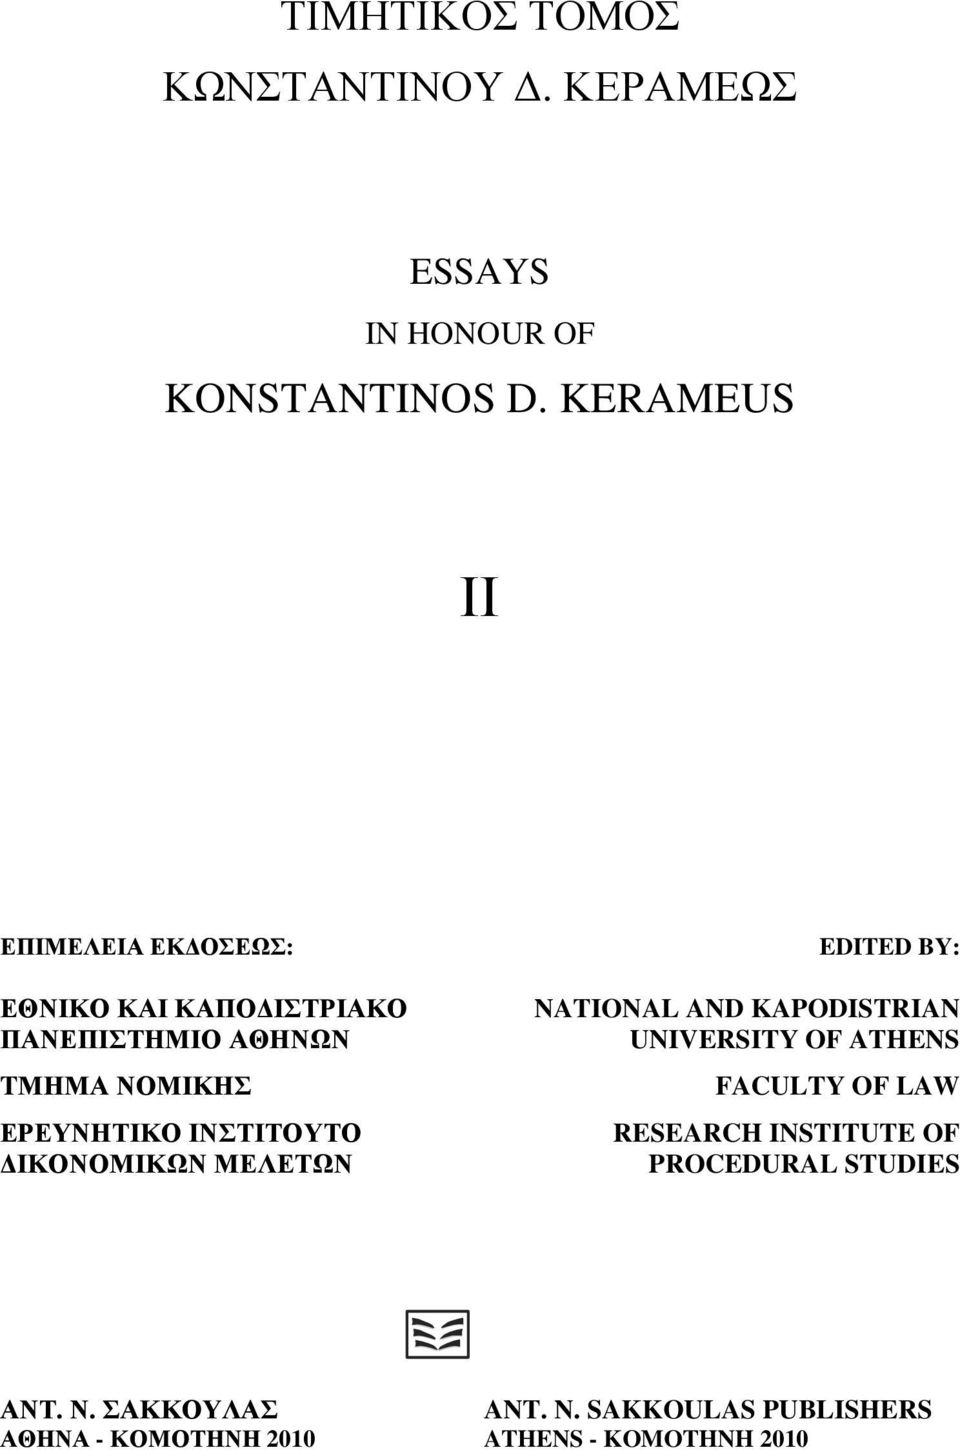 ΙΝΣΤΙΤΟΥΤΟ ΔΙΚΟΝΟΜΙΚΩΝ ΜΕΛΕΤΩΝ EDITED BY: NATIONAL AND KAPODISTRIAN UNIVERSITY OF ATHENS FACULTY OF LAW